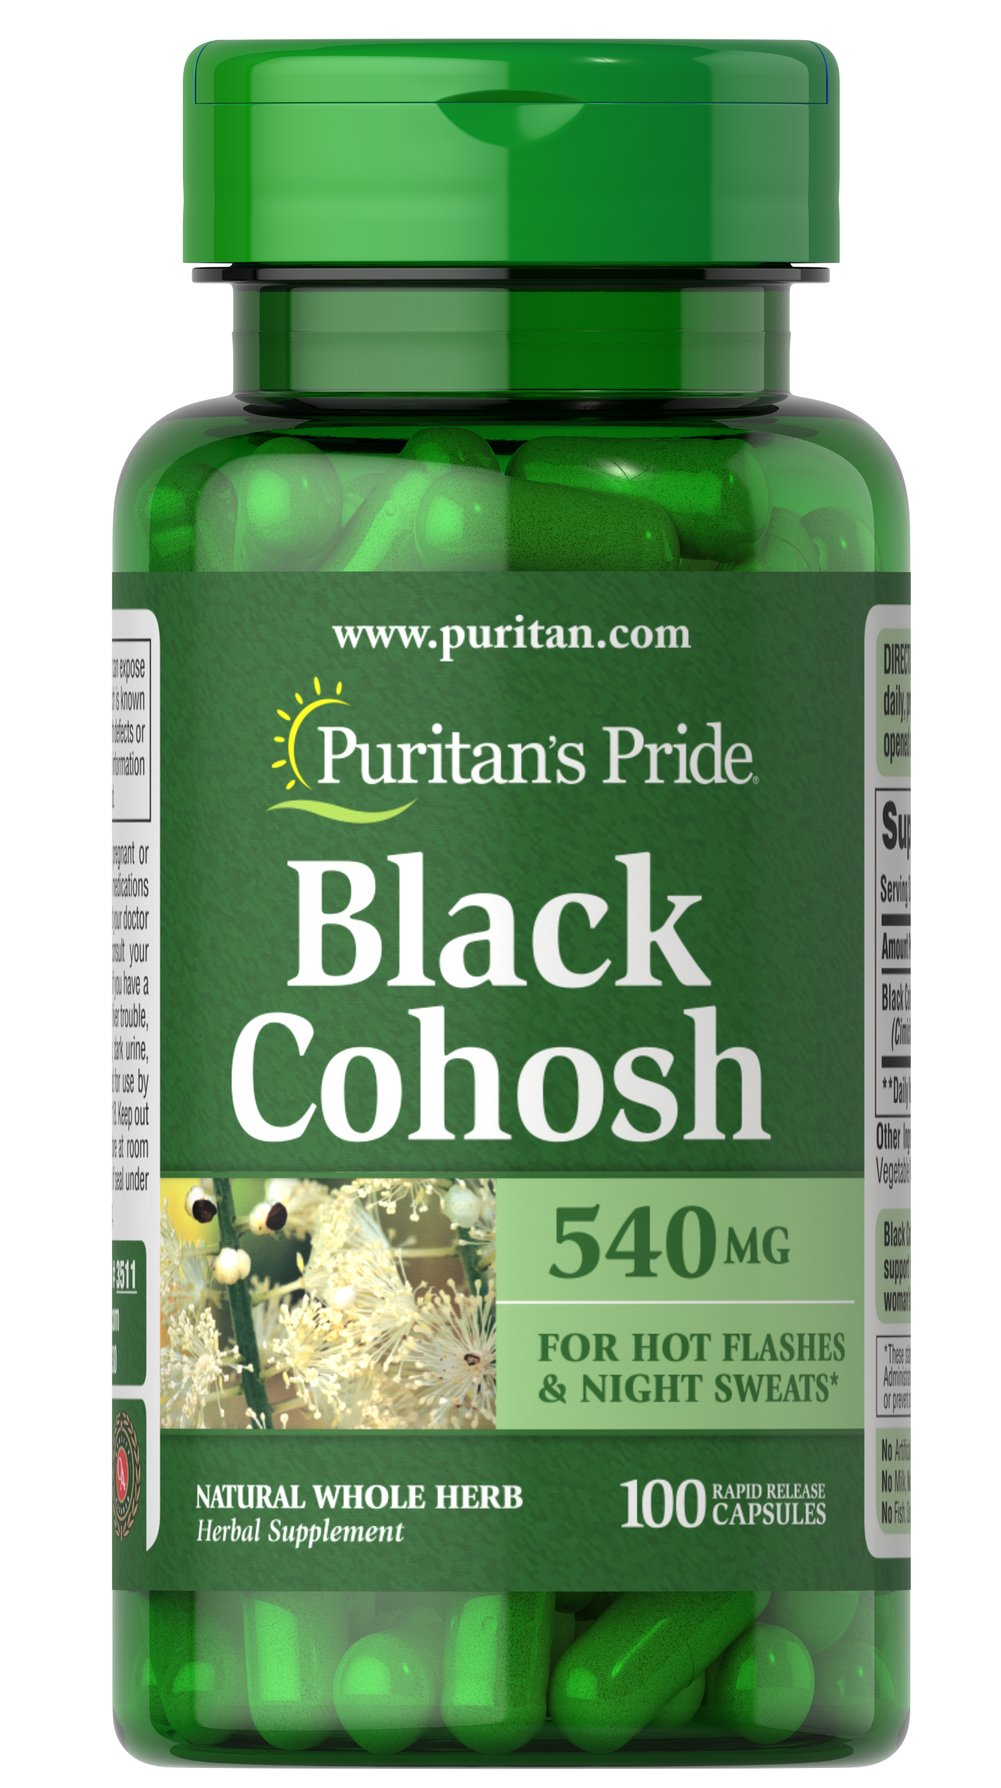 Black Cohosh 540 mg <p>Traditional Support for Menopausal Health**  <br /><br />As one of the leading traditional herbs for women's health, Black Cohosh is famous for its ability to promote menopausal health.** Black Cohosh has been traditionally used to help support the physical changes that occur in a woman's body over time.**</p><p></p><p></p><p></p> 100 Capsules 540 mg $13.99